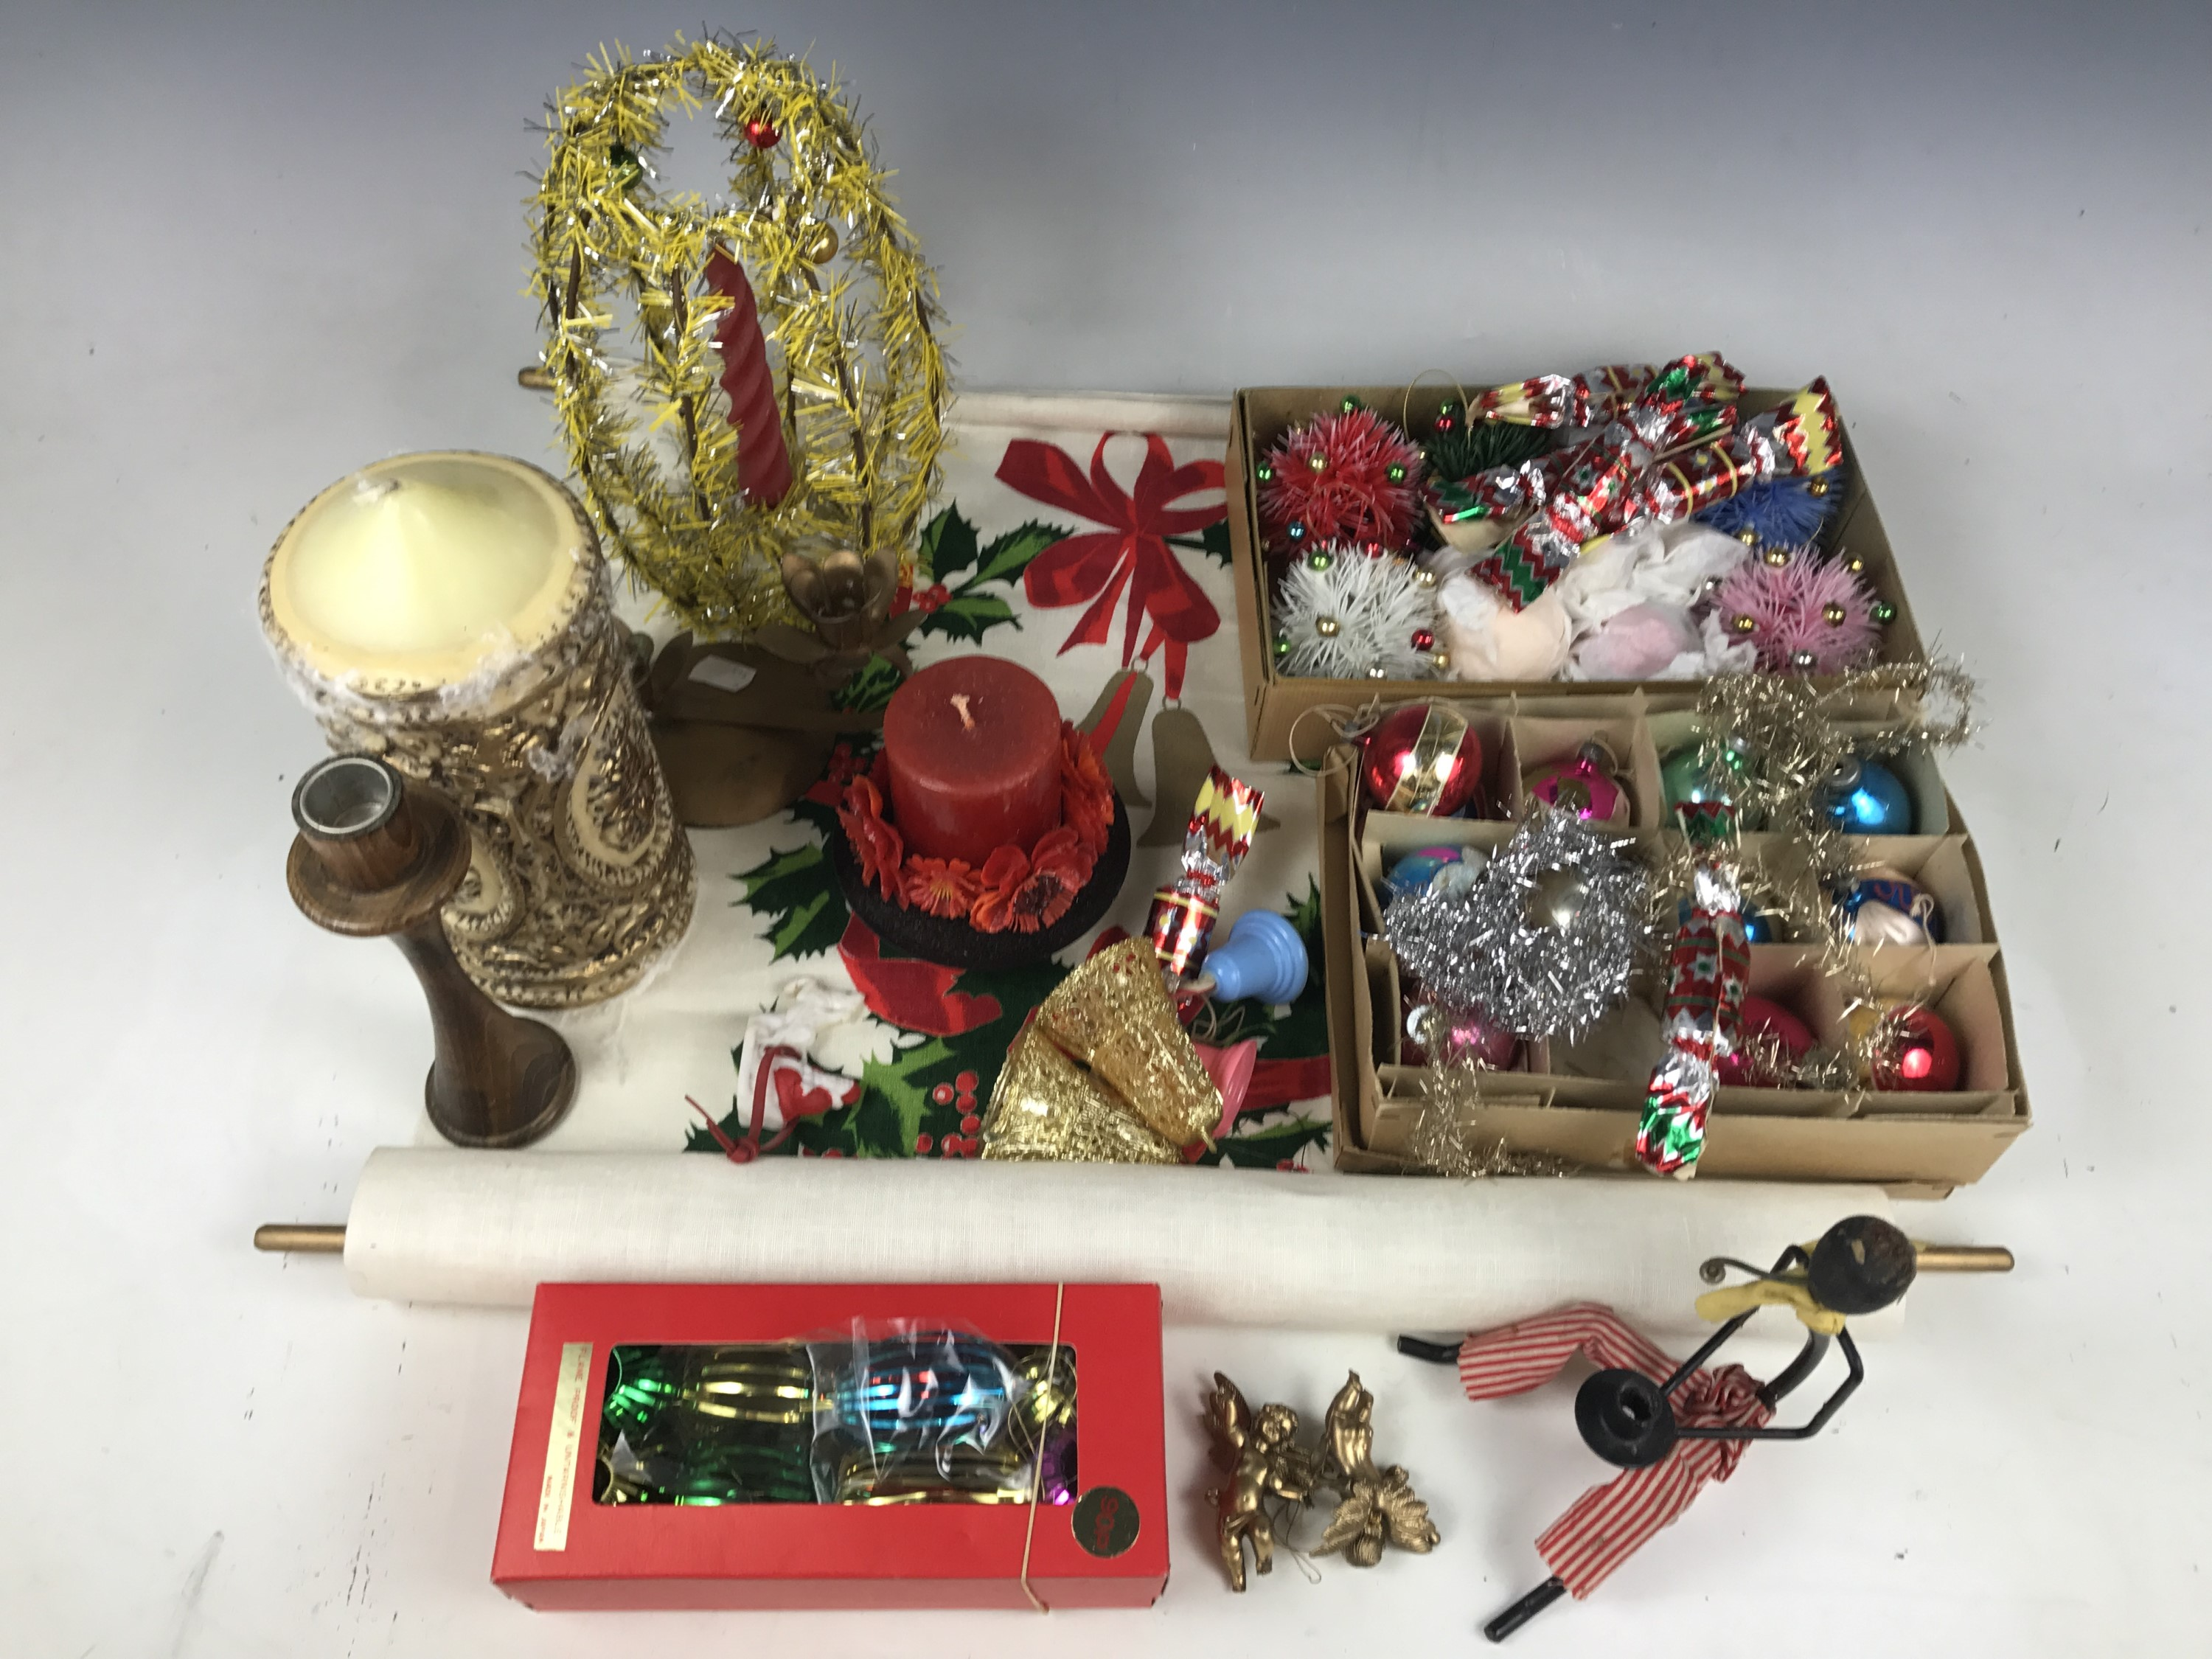 Lot 48 - A quantity of vintage Christmas decorations including baubles and accessories etc